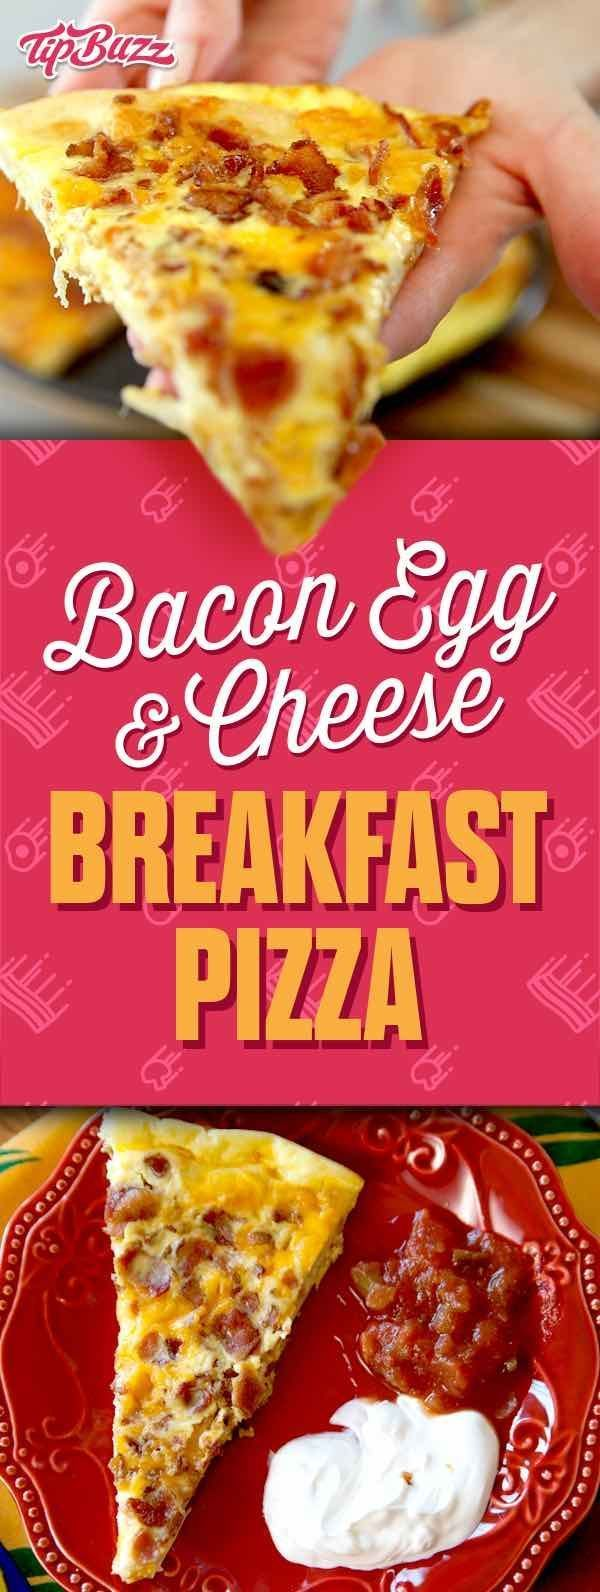 Bacon Egg & Cheese breakfast pizza. It's so easy! All you need is Pillsbury pizza dough, eggs, bacon and cheese. Perfect for brunch at home. | http://tipbuzz.com